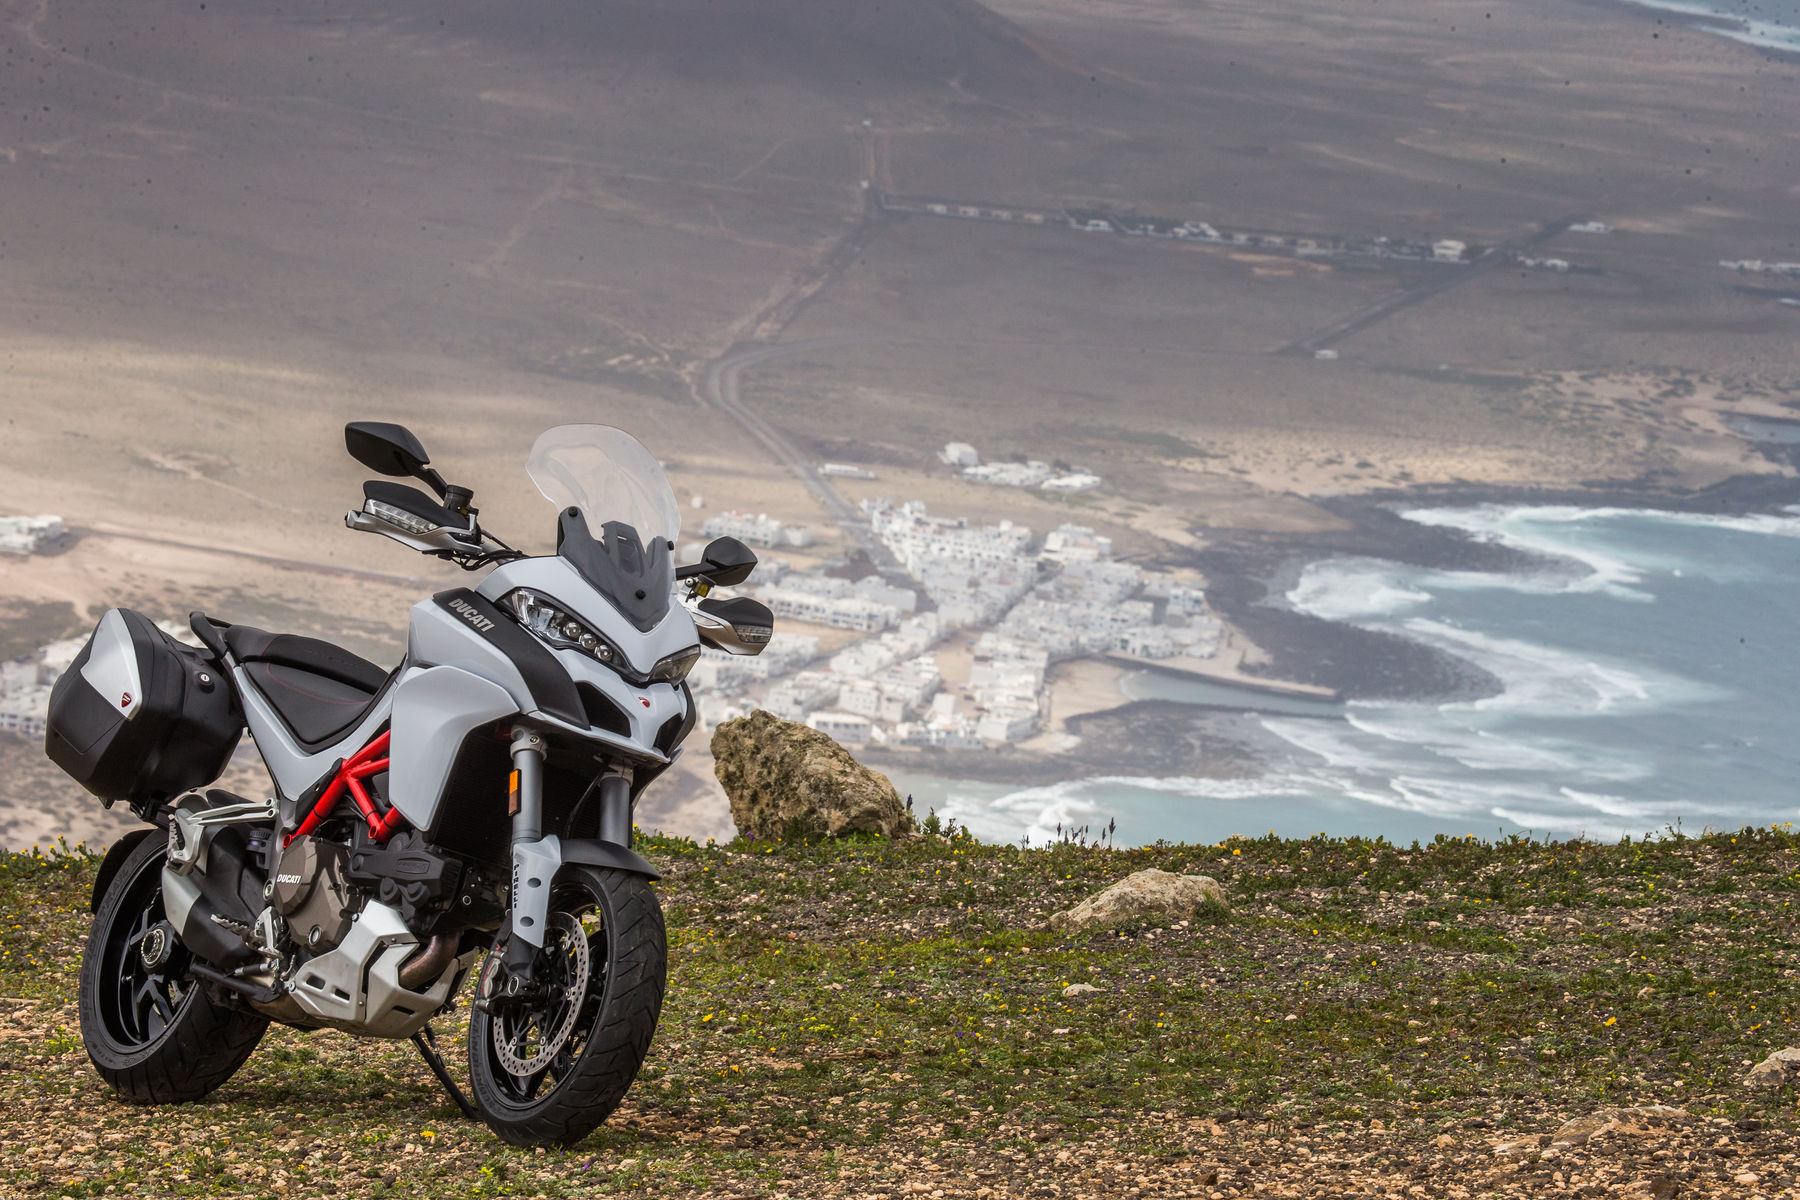 2015 Ducati Multistrada 1200 S | Multistrada 1200 S - Coastal Views